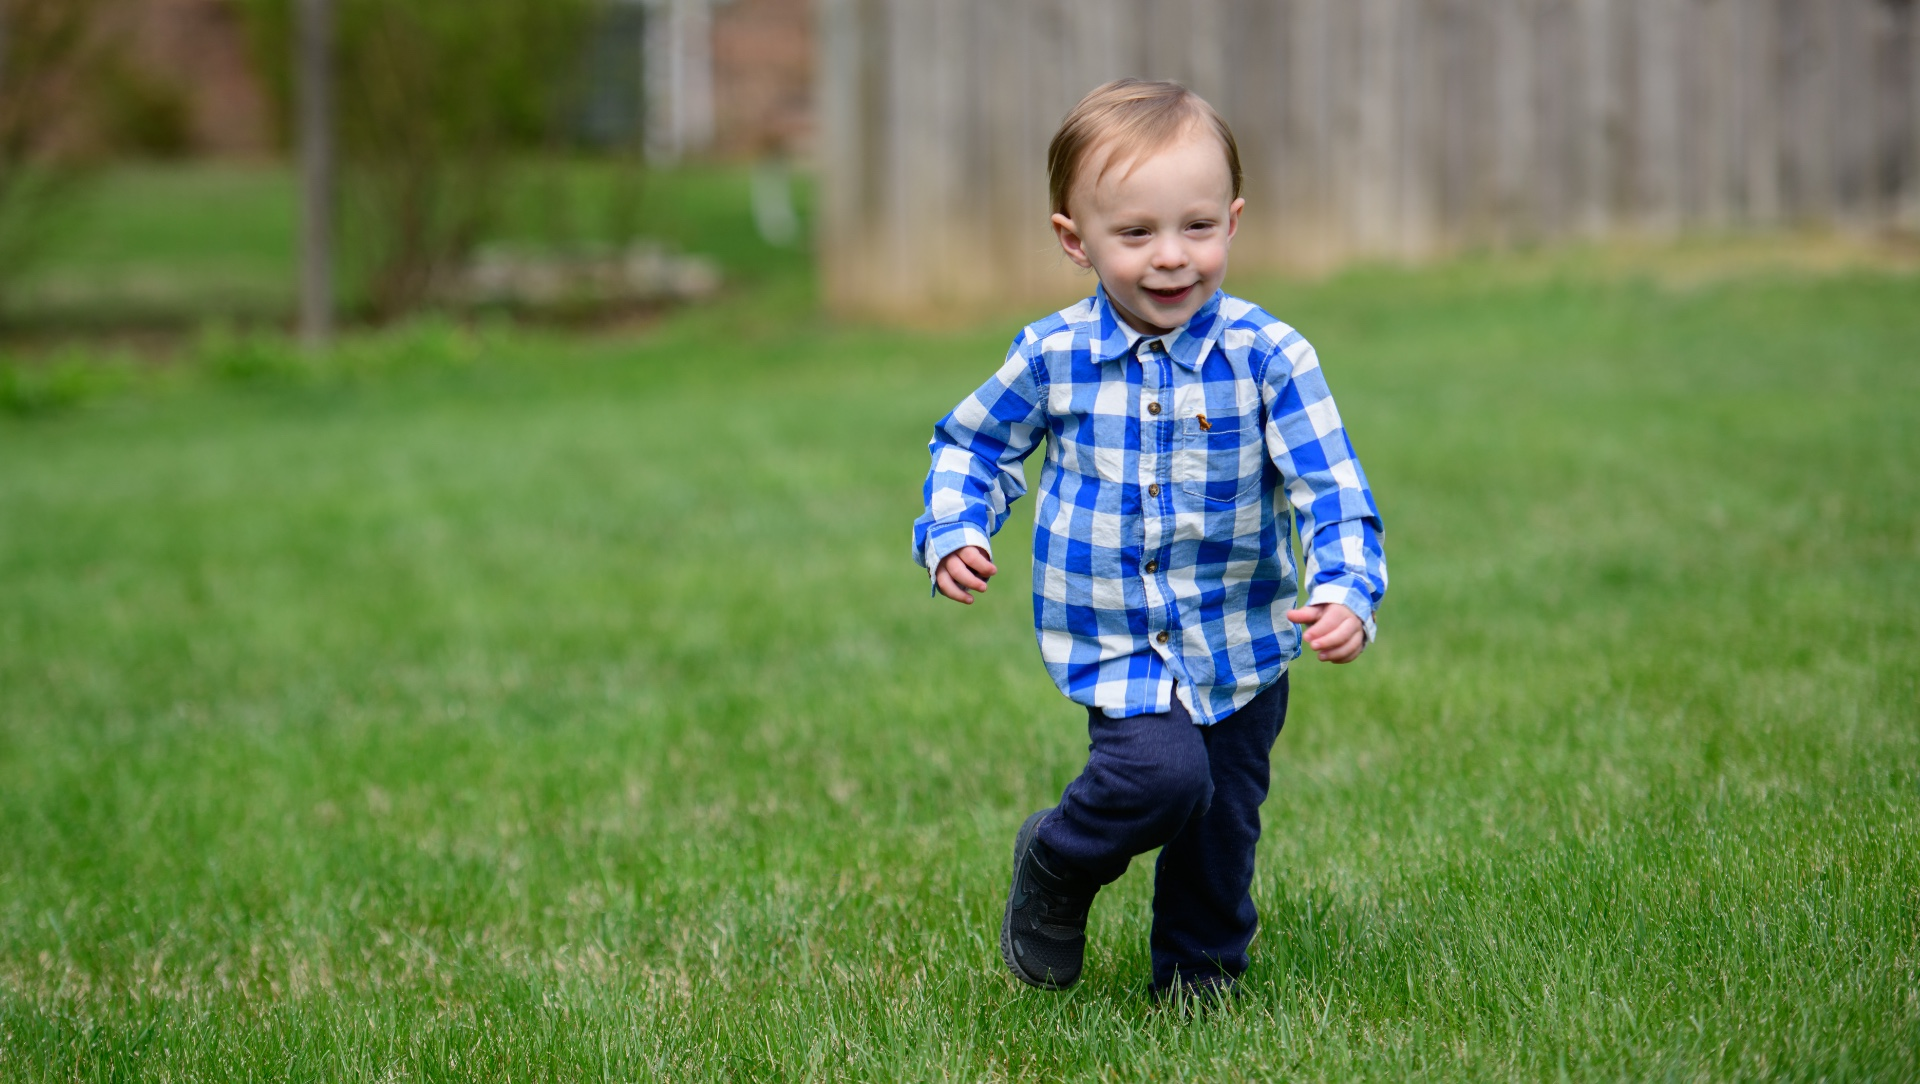 Michael runs across an open field. He is wearing a blue and white checkered shirt with navy blue pants.